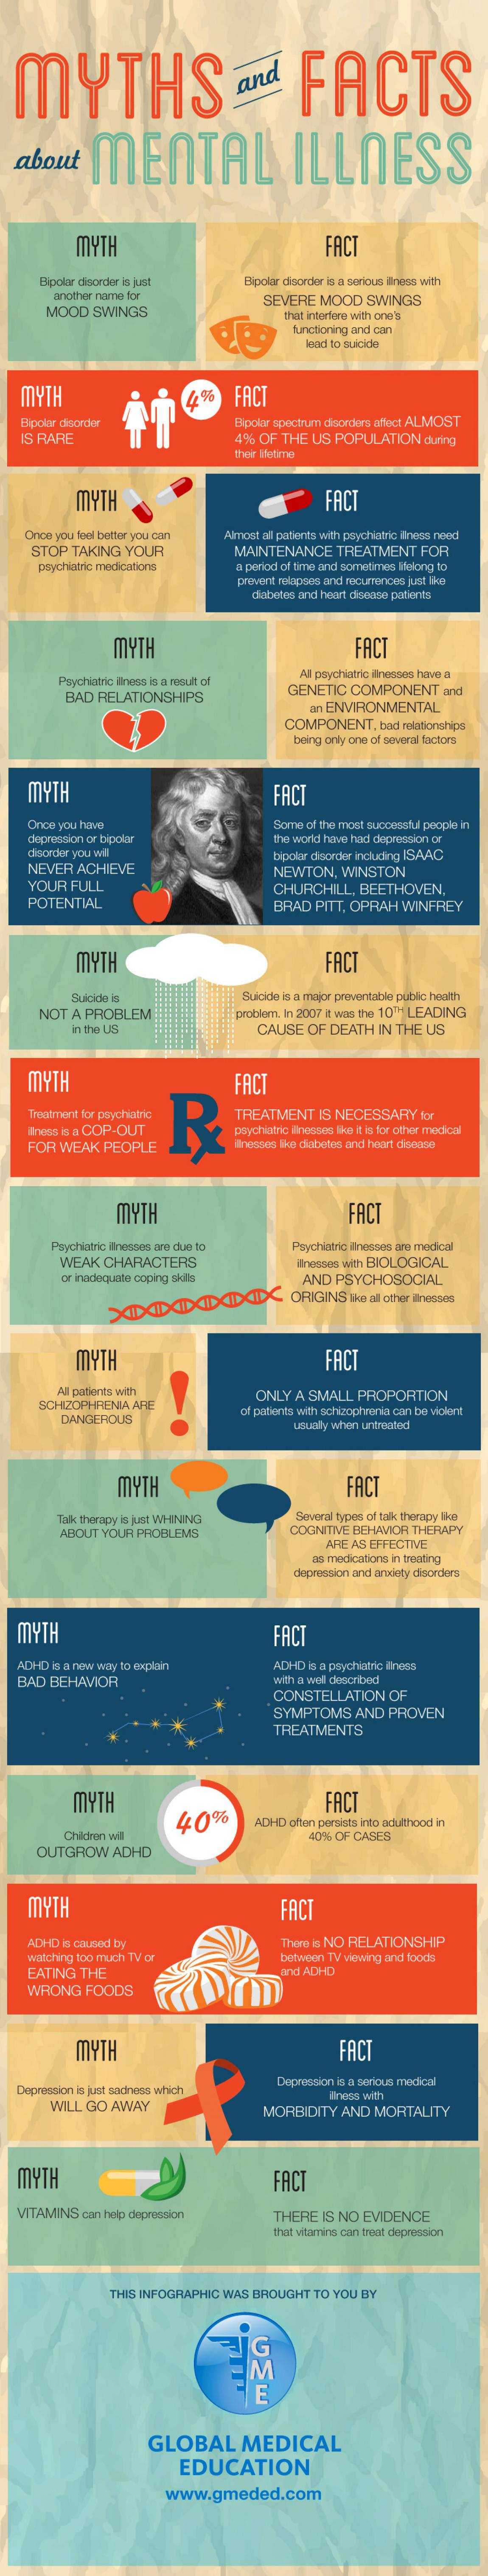 Myths Amp Facts About Mental Illness